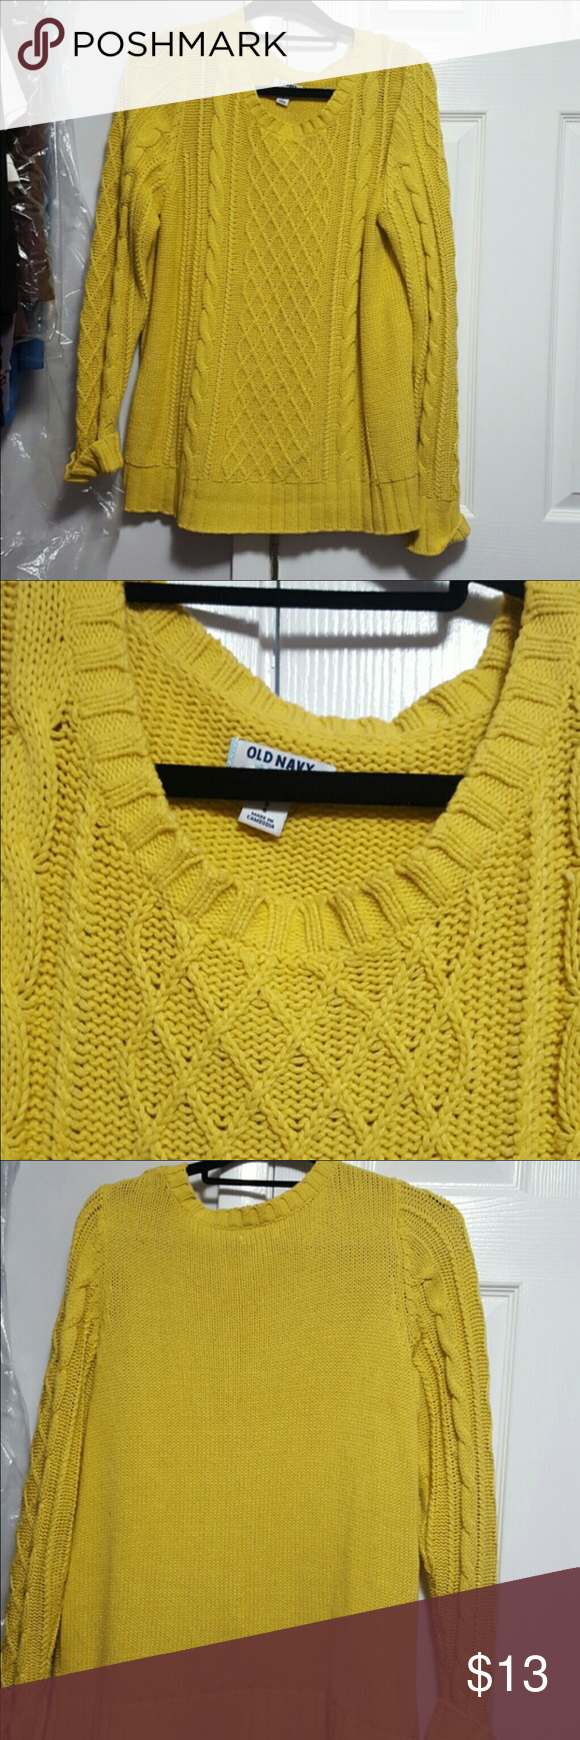 Old navy mustard yellow sweater Very warm and comfortable. Has ...